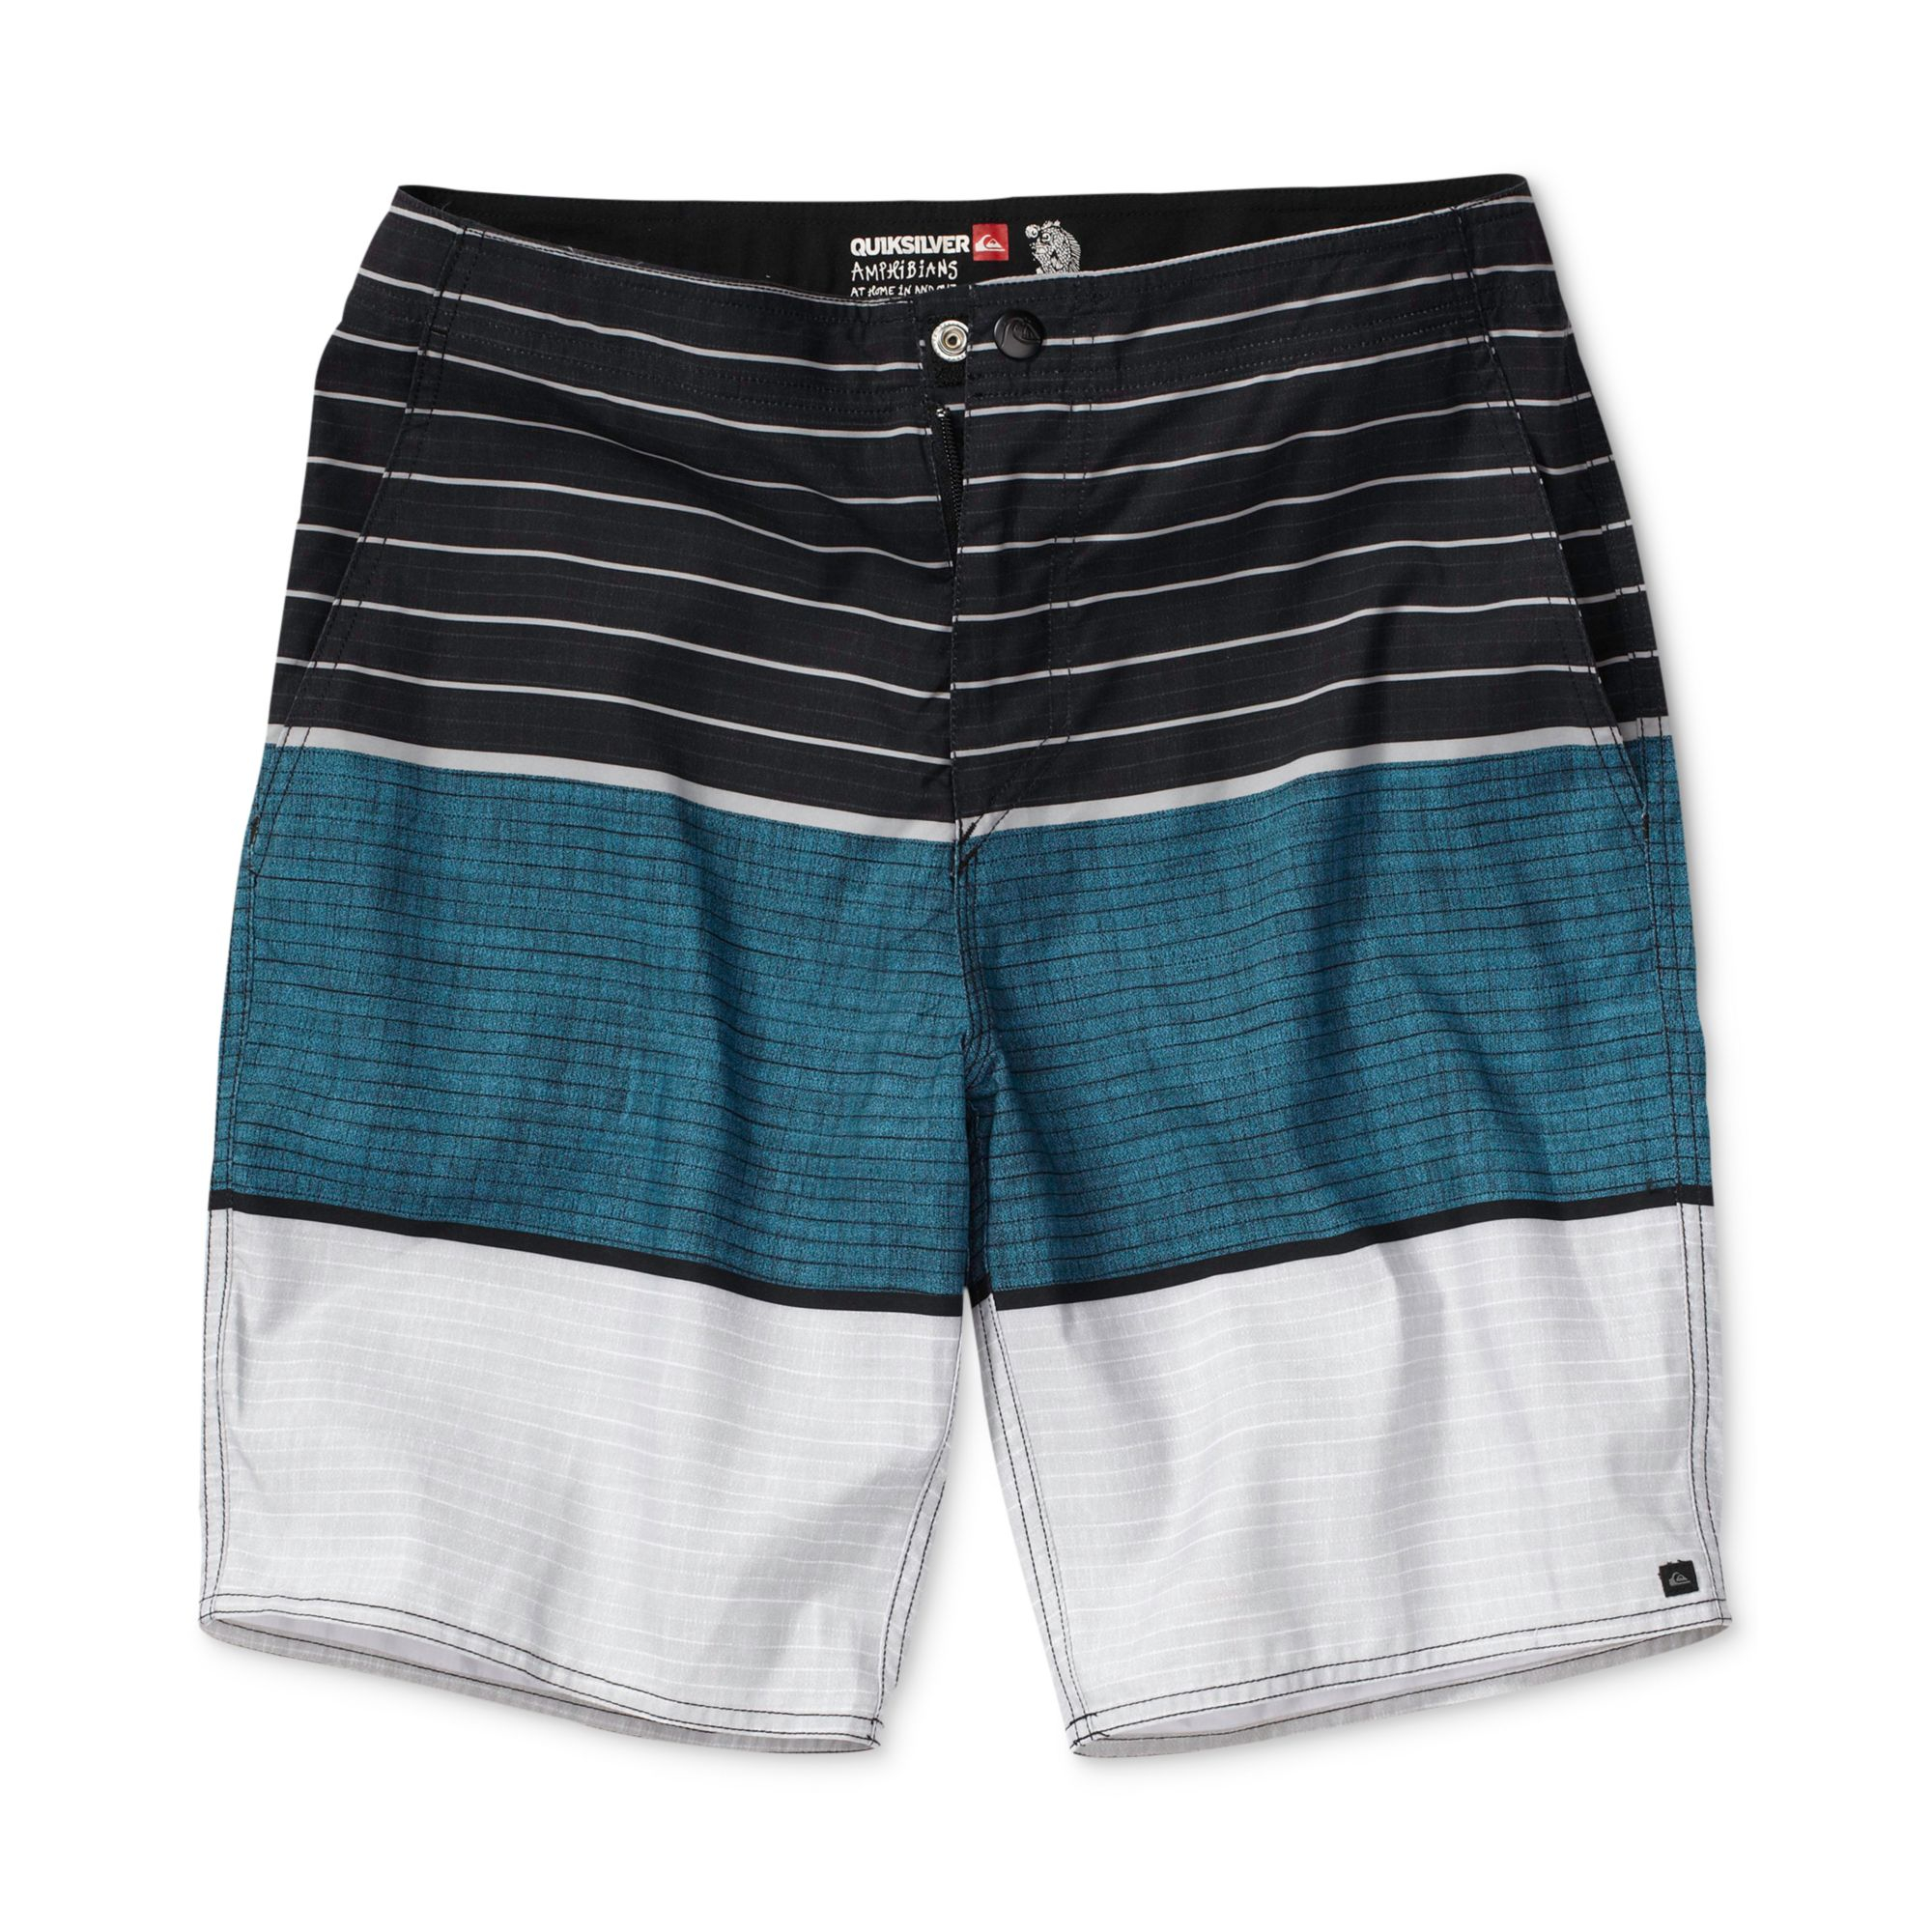 6822df25e4 Quiksilver Monsoon Land To Water Shorts in Blue for Men - Lyst